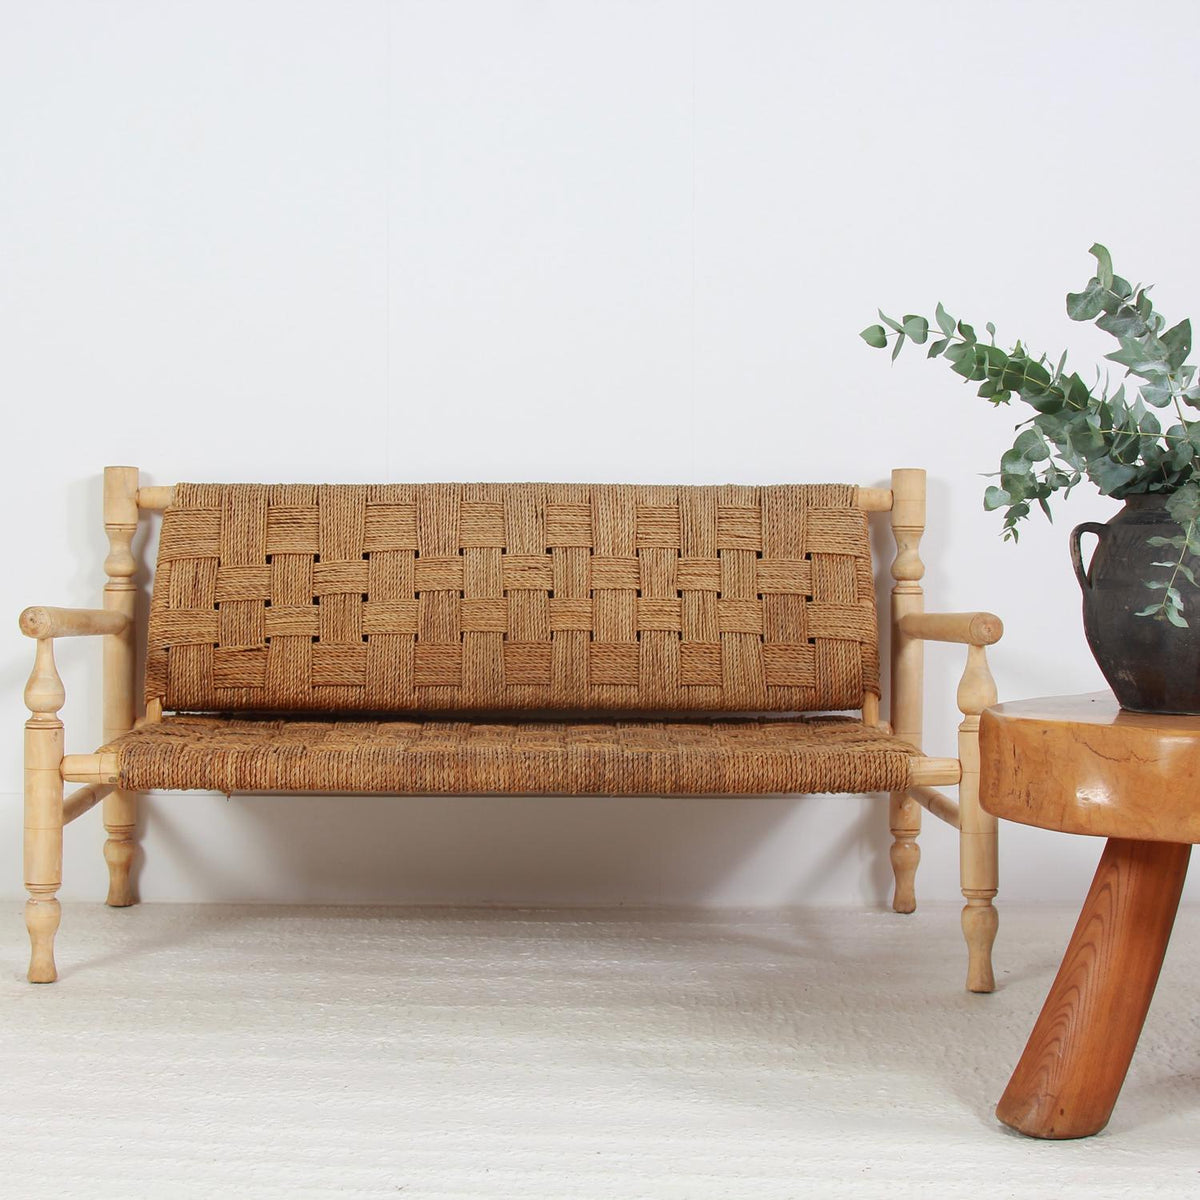 French Mid-Century Rope Sofa in the Style of Adrian & Frida Audoux-Minet.